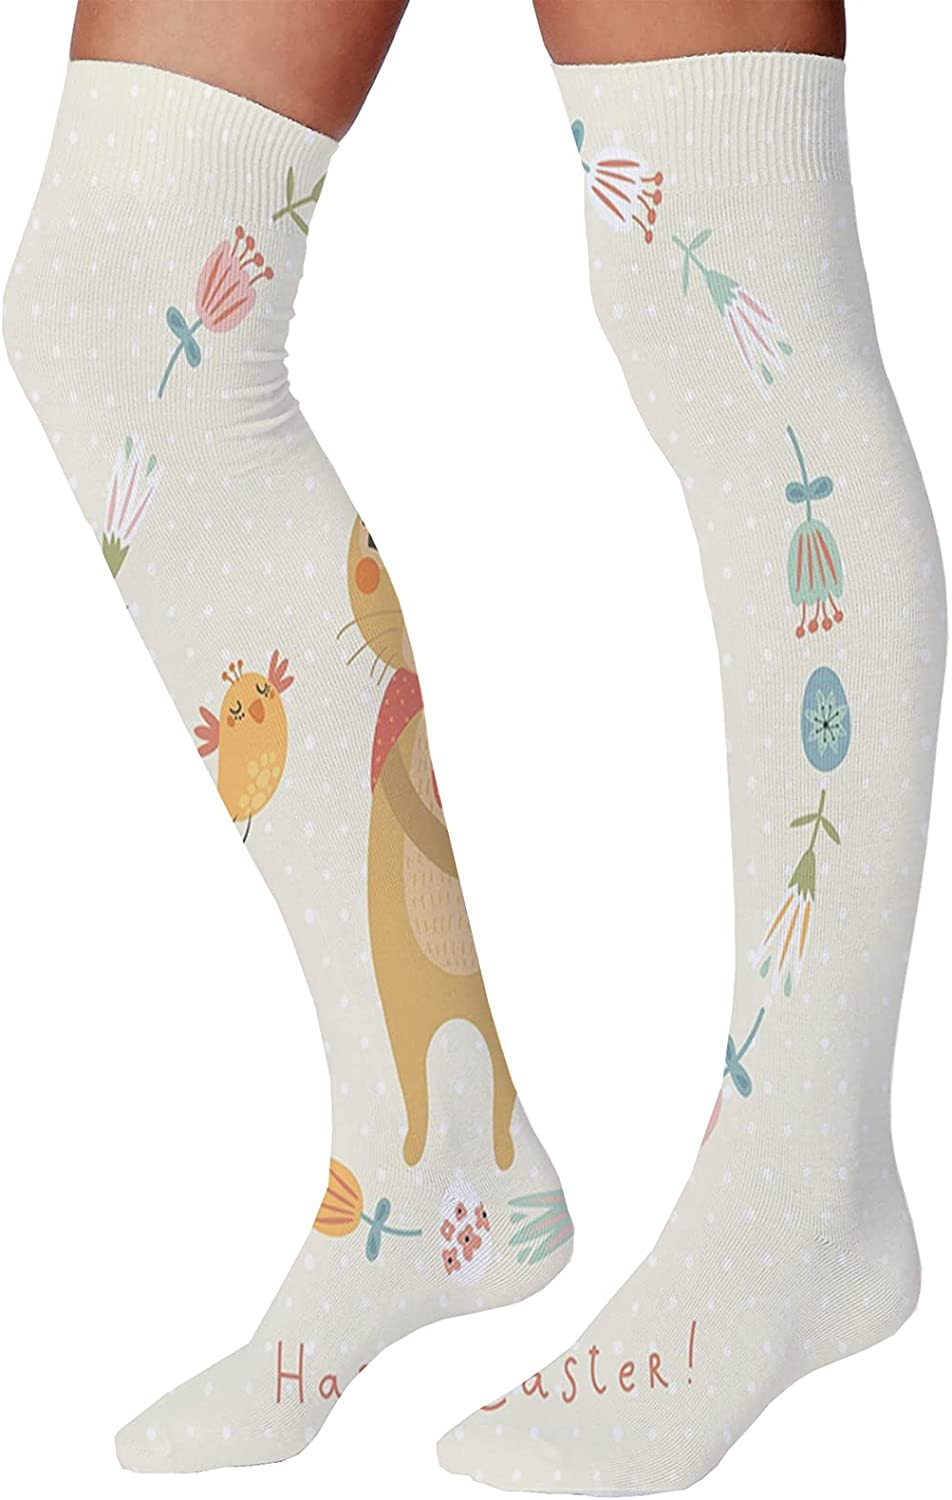 Unisex Dress Cool Colorful Fancy Novelty Funny Casual Combed Cotton Crew Socks,Bunny with a Basket in Hand and Bird Inside Floral Banner Happy Easter Print Pastel